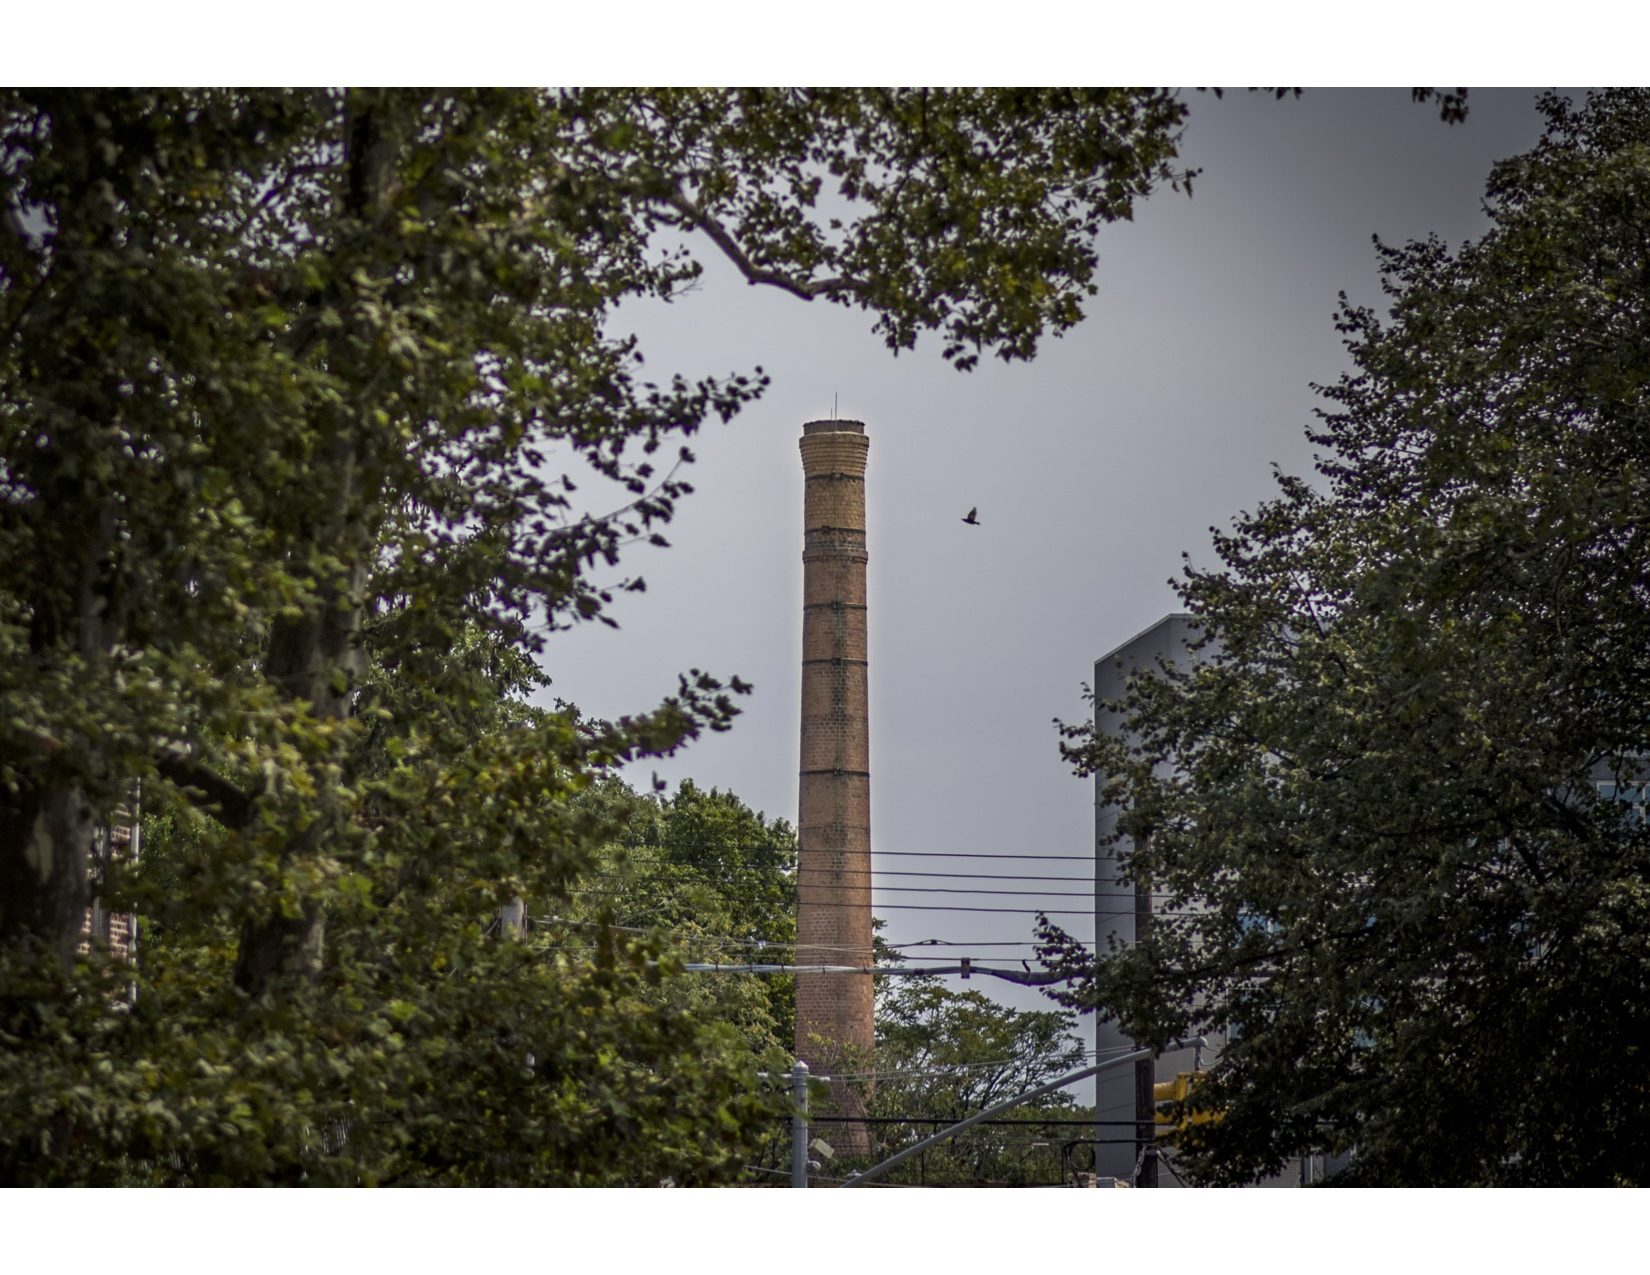 A towering smoke stack at The Vitagraph in New York